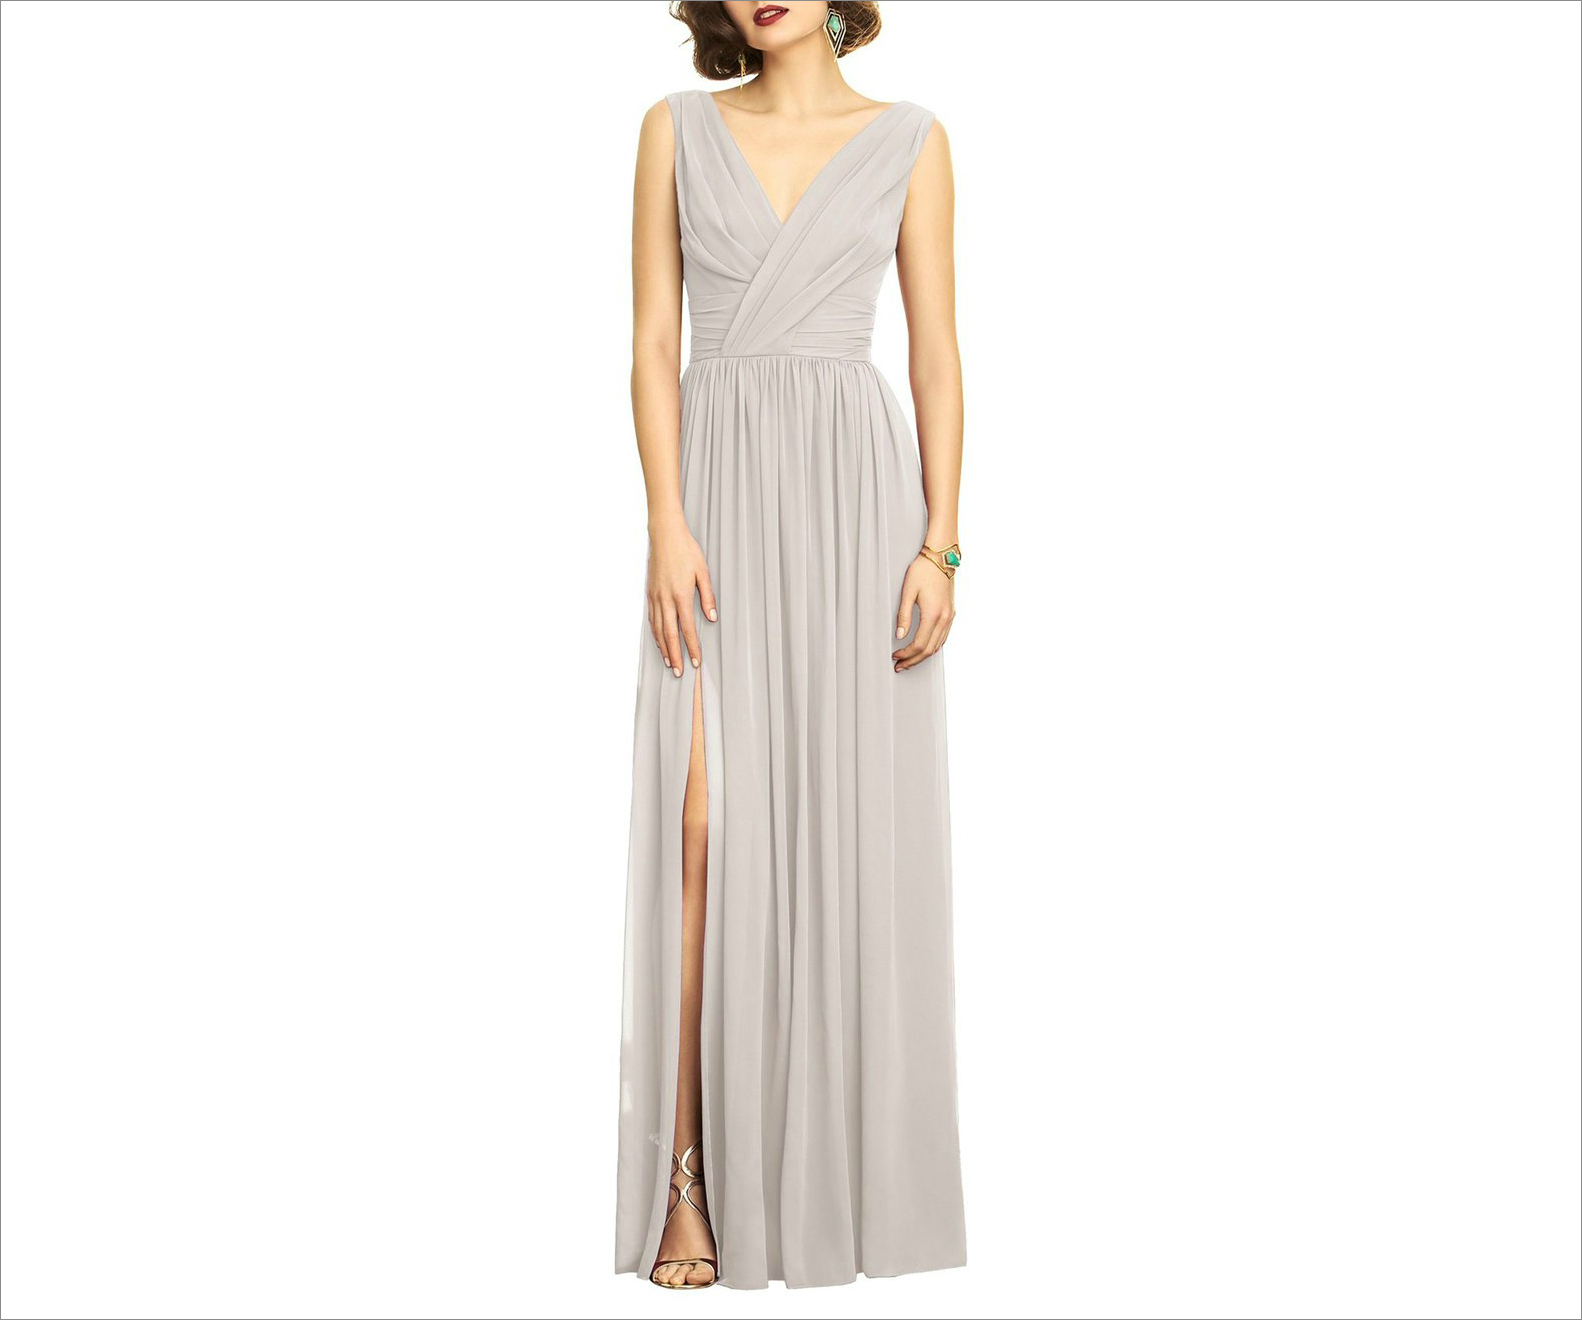 Surplice Ruched chiffon bridesmaid dress by Dessy Collection tan